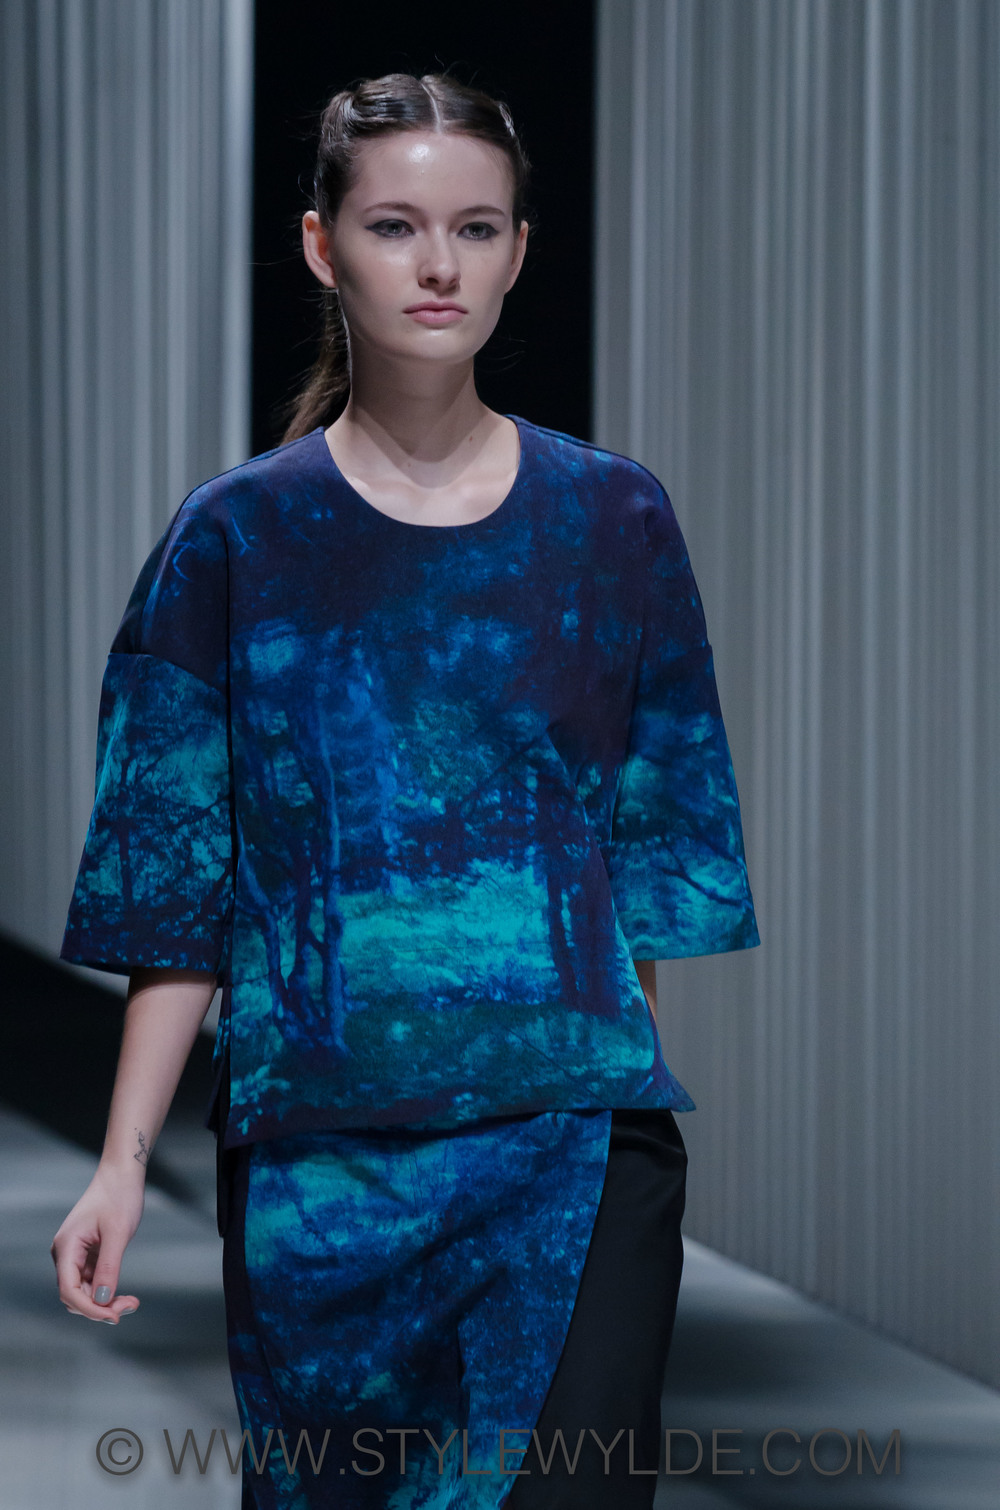 StyleWylde_Ujoh_AW14_story (1 of 1)-6.jpg